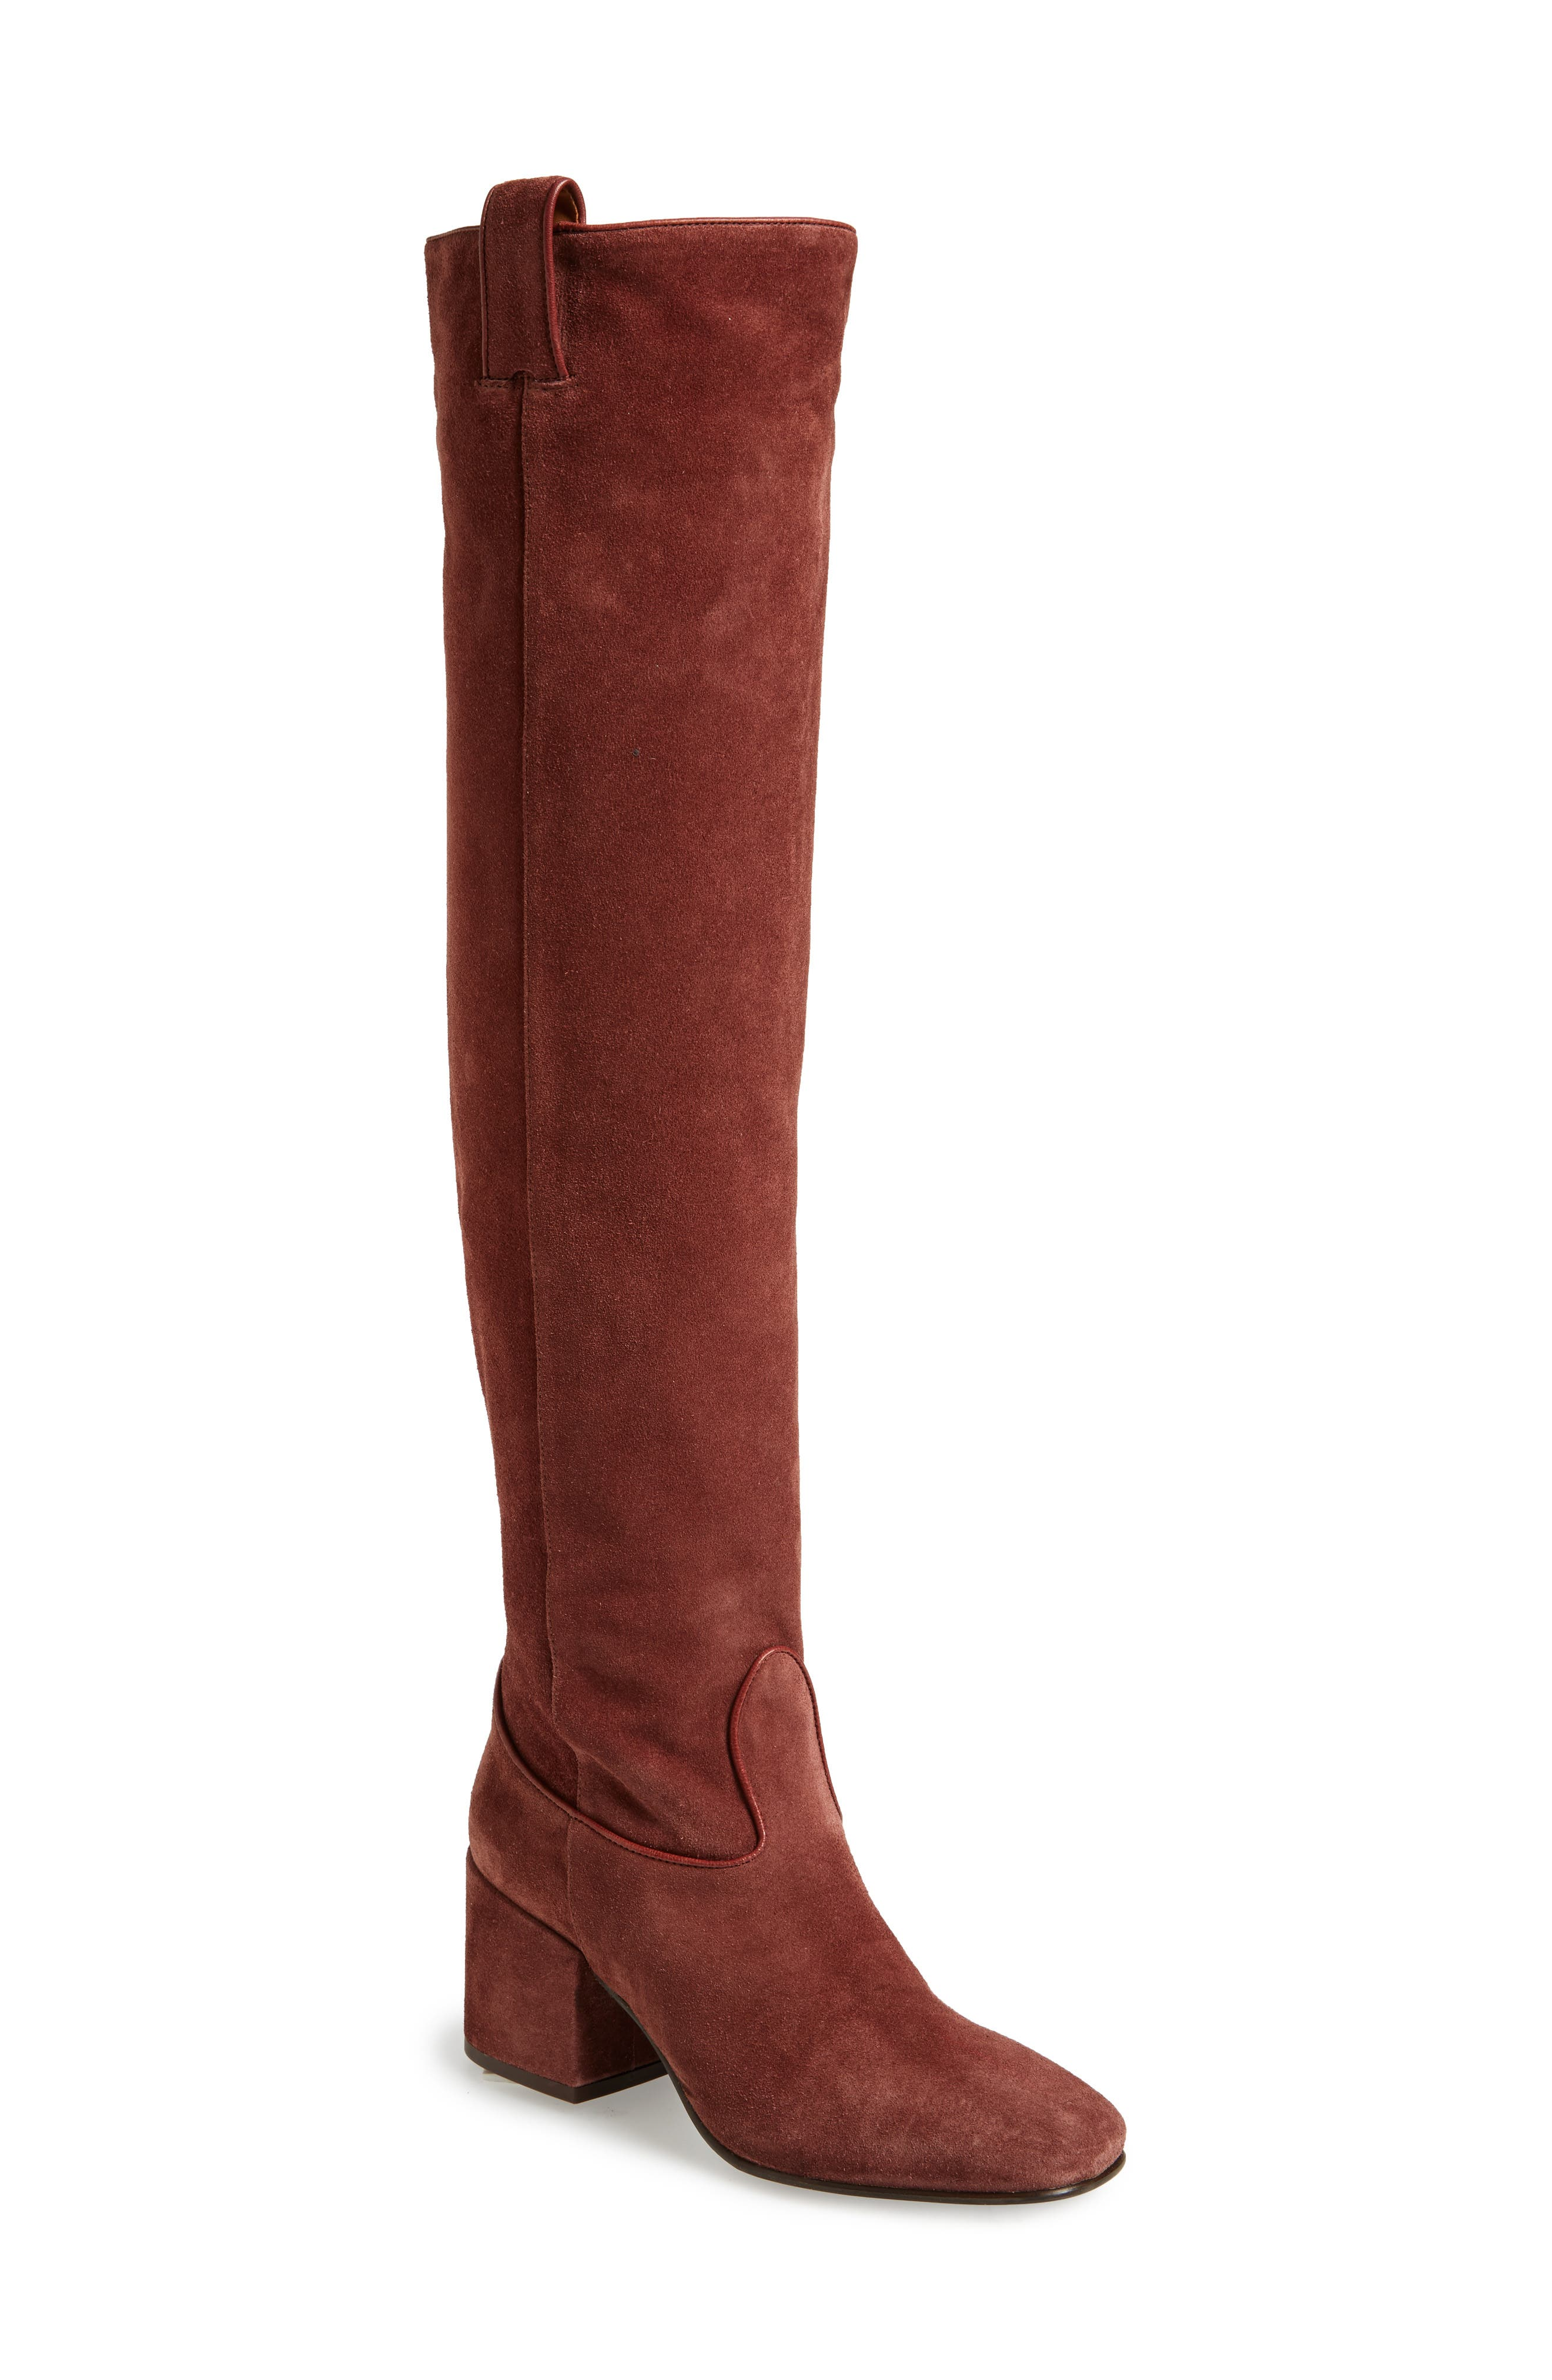 Delia Over the Knee Boot,                         Main,                         color, 930